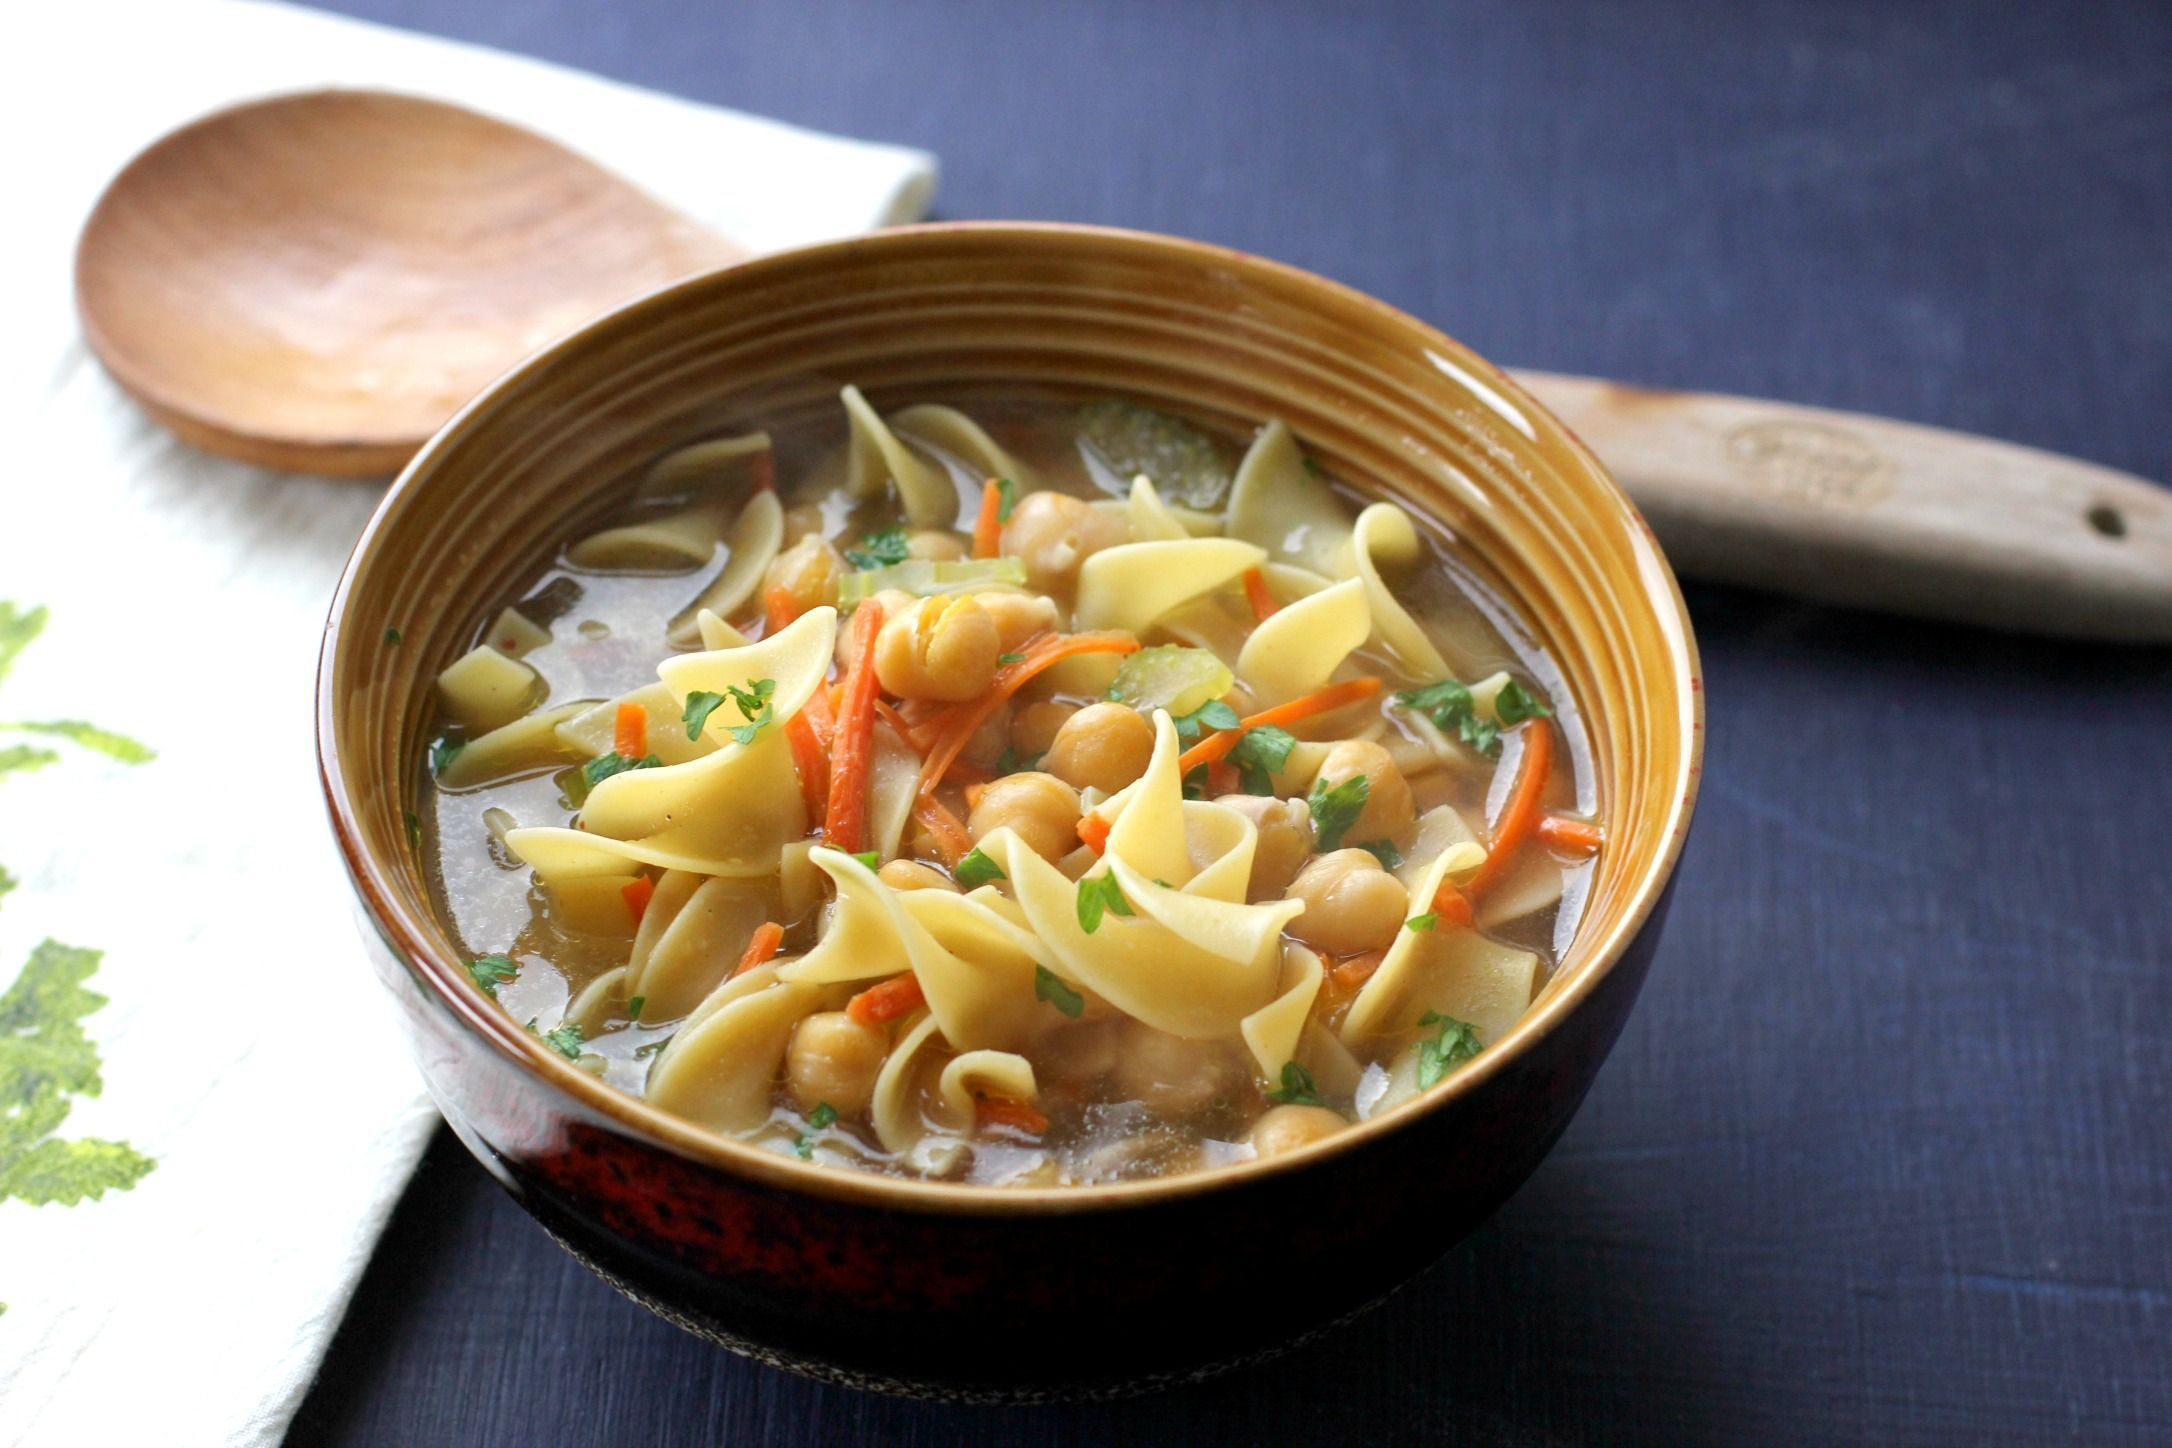 Chickpea Noodle Soup #chickpeanoodlesoup This chickpea noodle soup is a vegetarian comfort food that can be ready in just 30 minutes. It's perfect for a weeknight meatless meal! #chickpeanoodlesoup Chickpea Noodle Soup #chickpeanoodlesoup This chickpea noodle soup is a vegetarian comfort food that can be ready in just 30 minutes. It's perfect for a weeknight meatless meal! #chickpeanoodlesoup Chickpea Noodle Soup #chickpeanoodlesoup This chickpea noodle soup is a vegetarian comfort food that #chickpeanoodlesoup